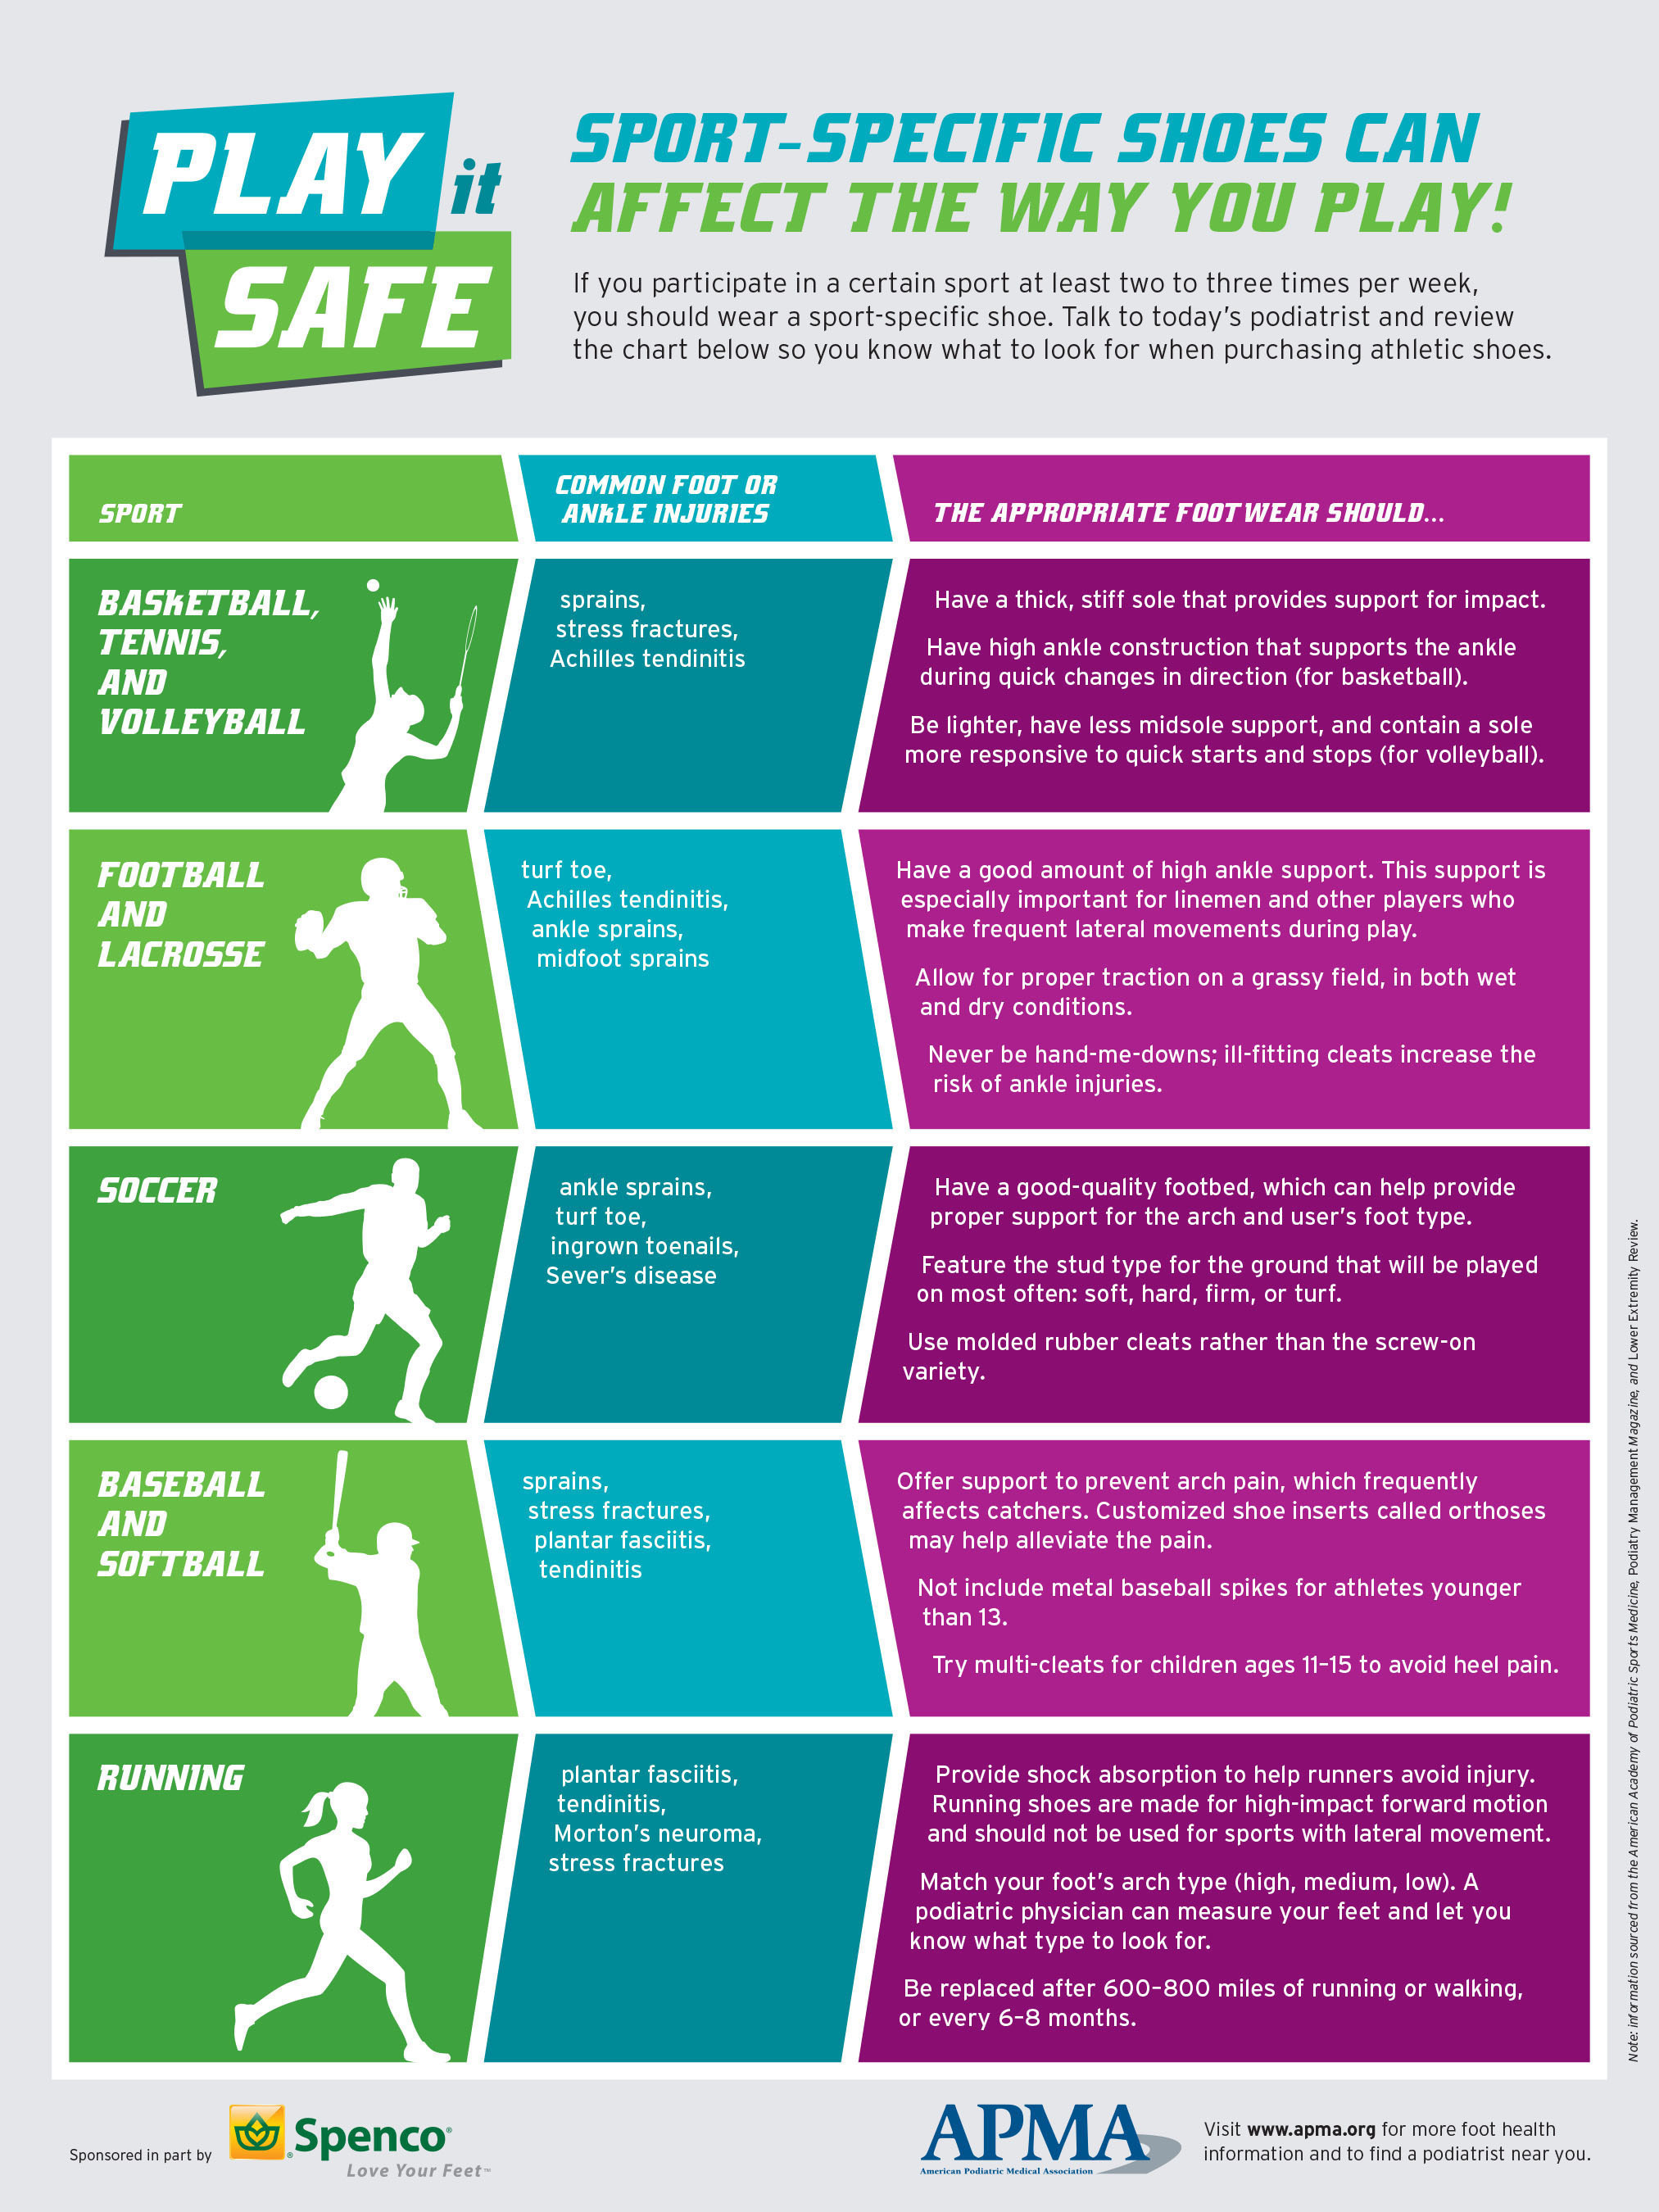 Keep these tips from today's podiatrist in mind when selecting shoes for sports.